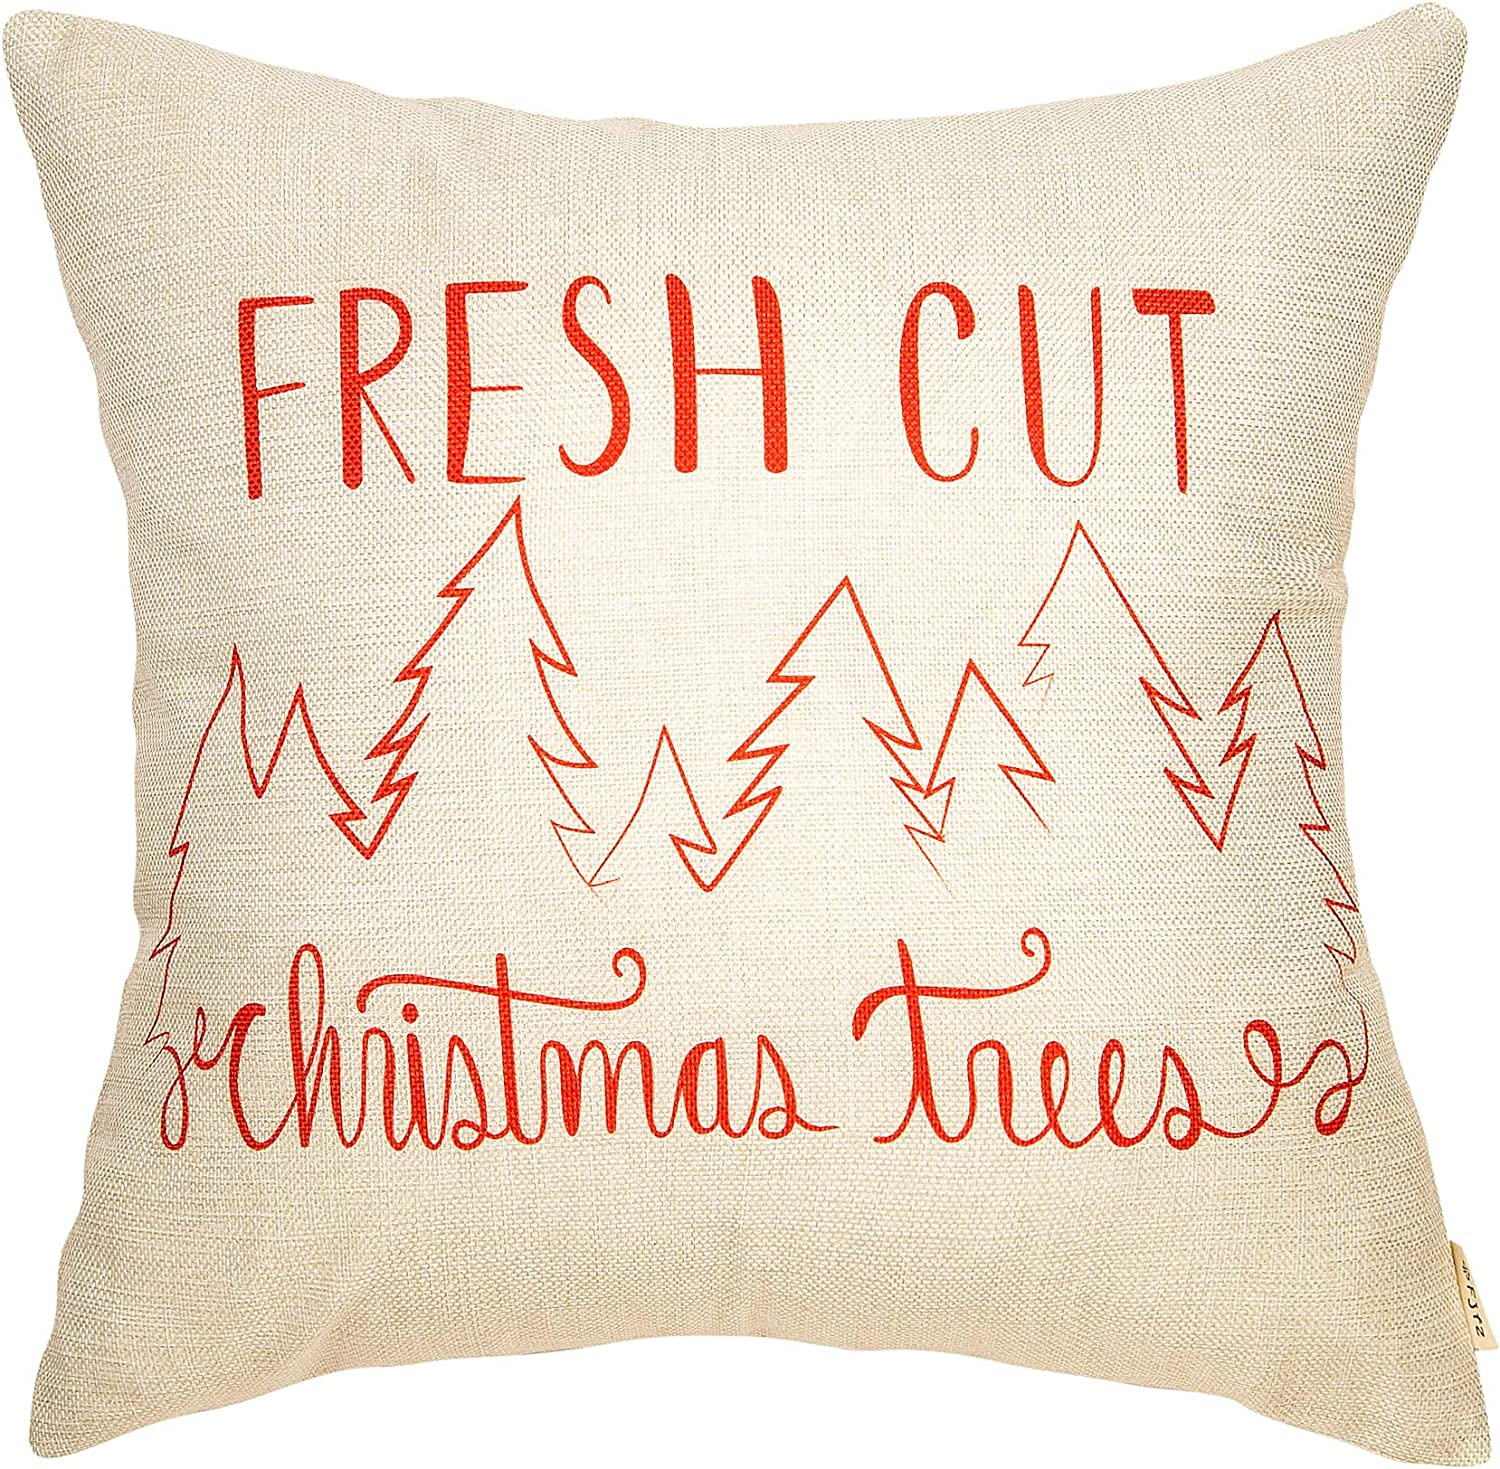 "Fjfz Rustic Farmhouse Style Fresh Cut Christmas Trees Winter Cotton Linen Home Decorative Throw Pillow Case Cushion Cover with Words for Sofa Couch, 18"" x 18"""